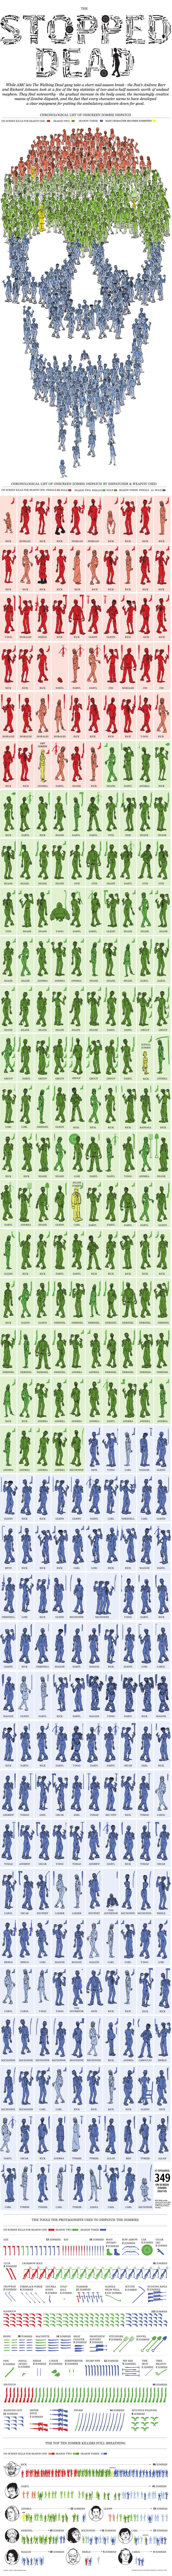 walking-dead-infographic-image